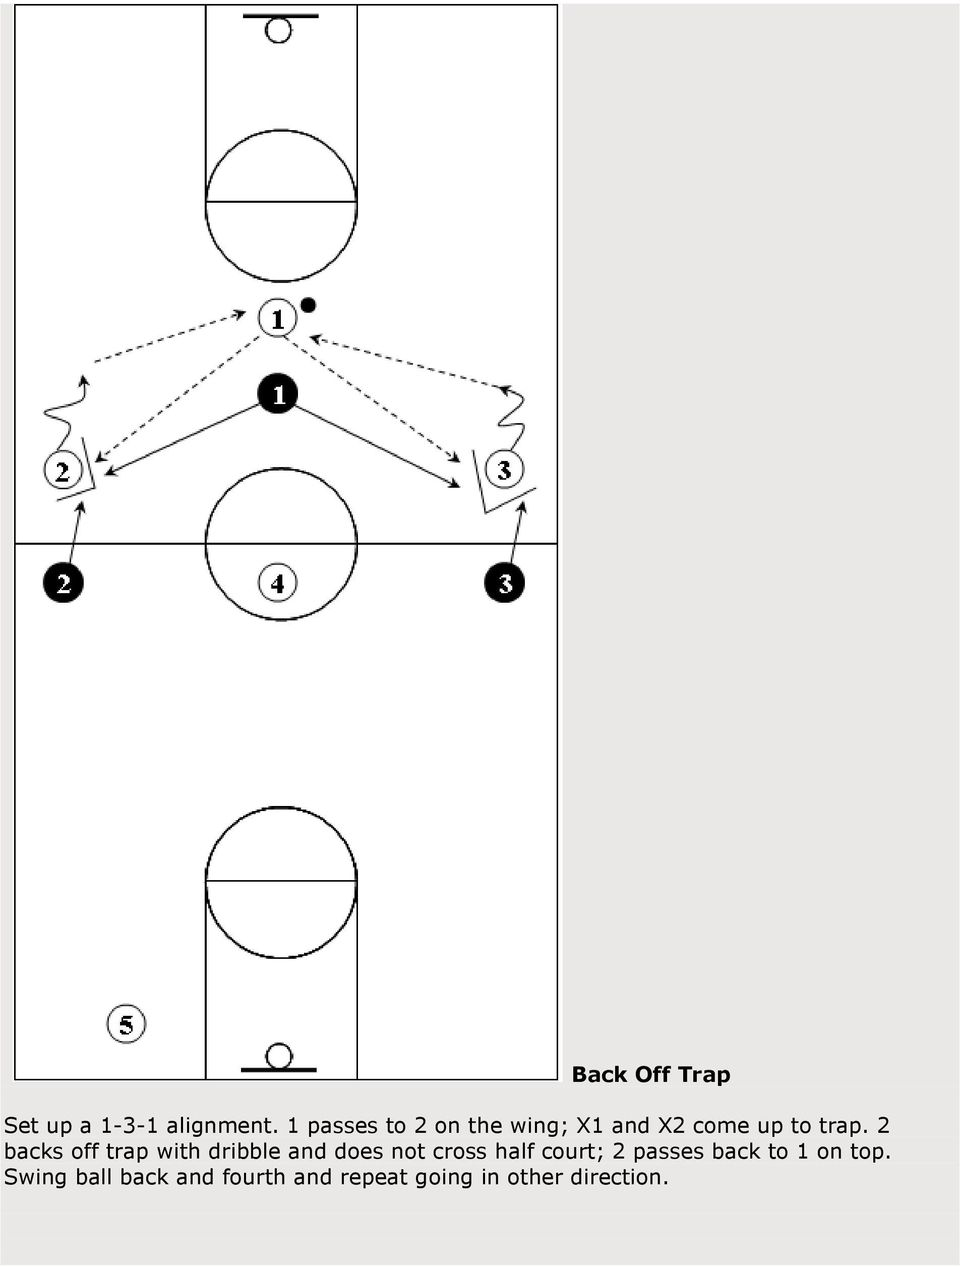 2 backs off trap with dribble and does not cross half court;